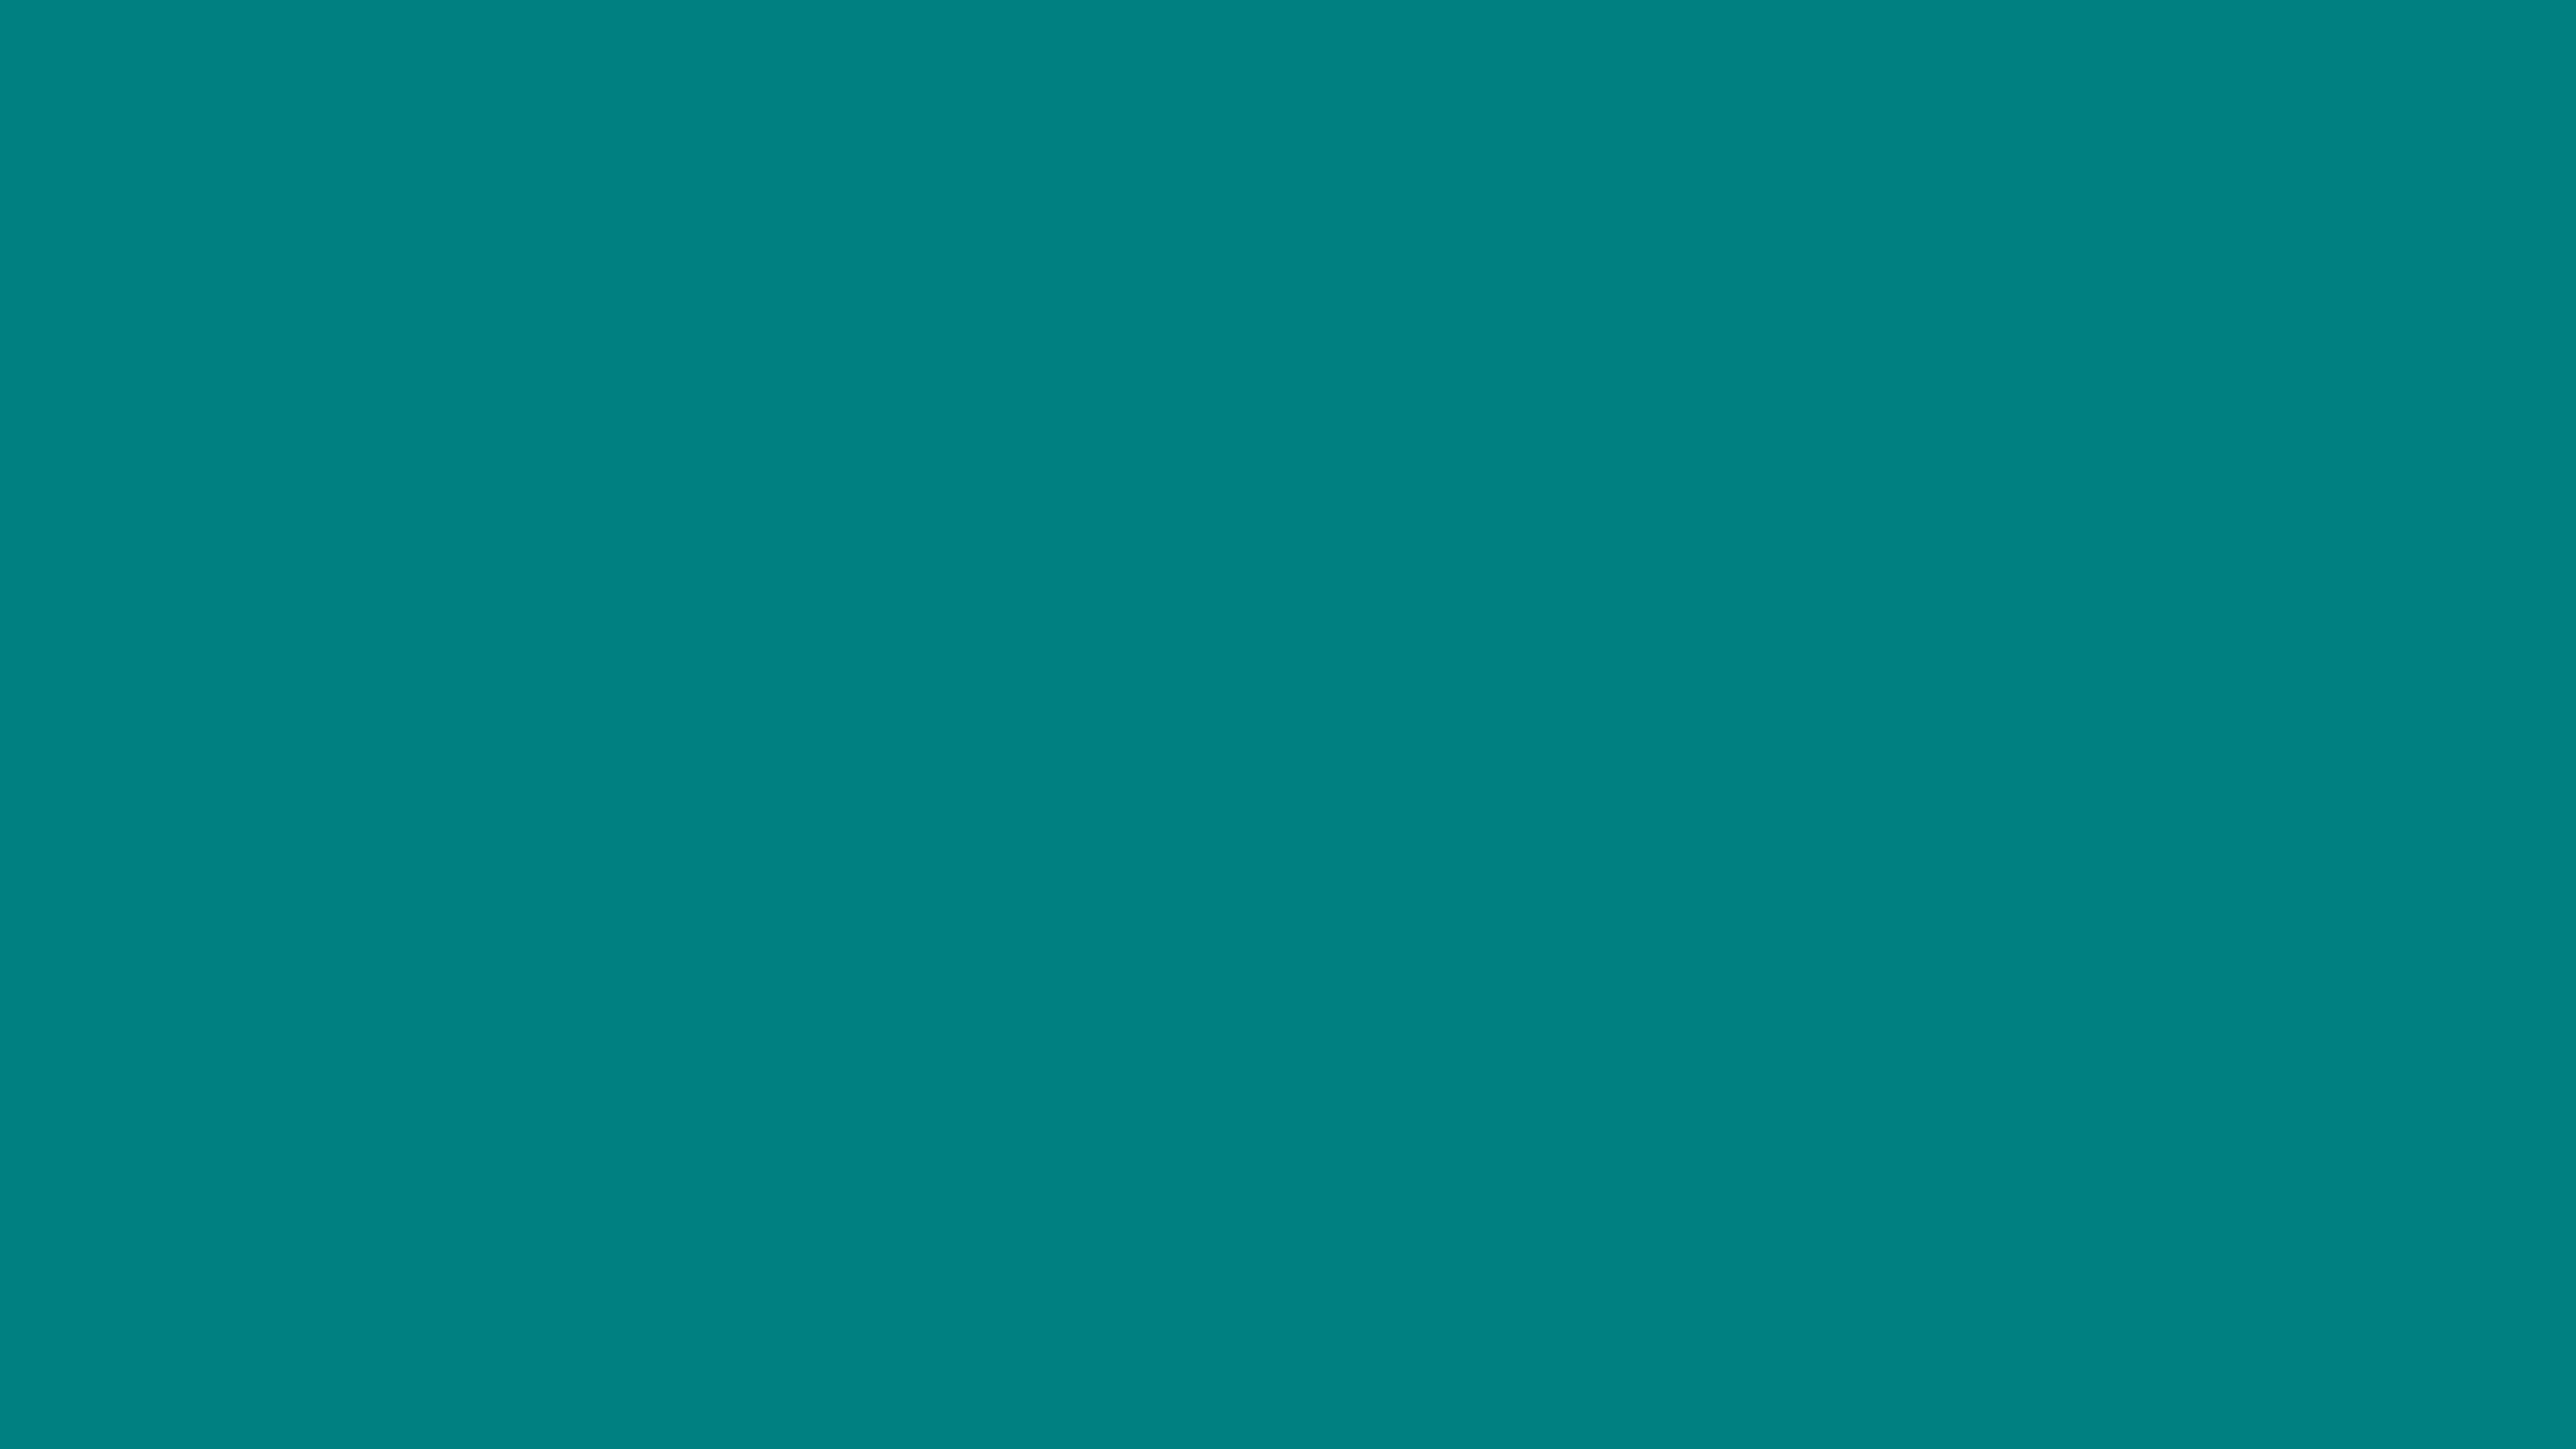 7680x4320 Teal Solid Color Background